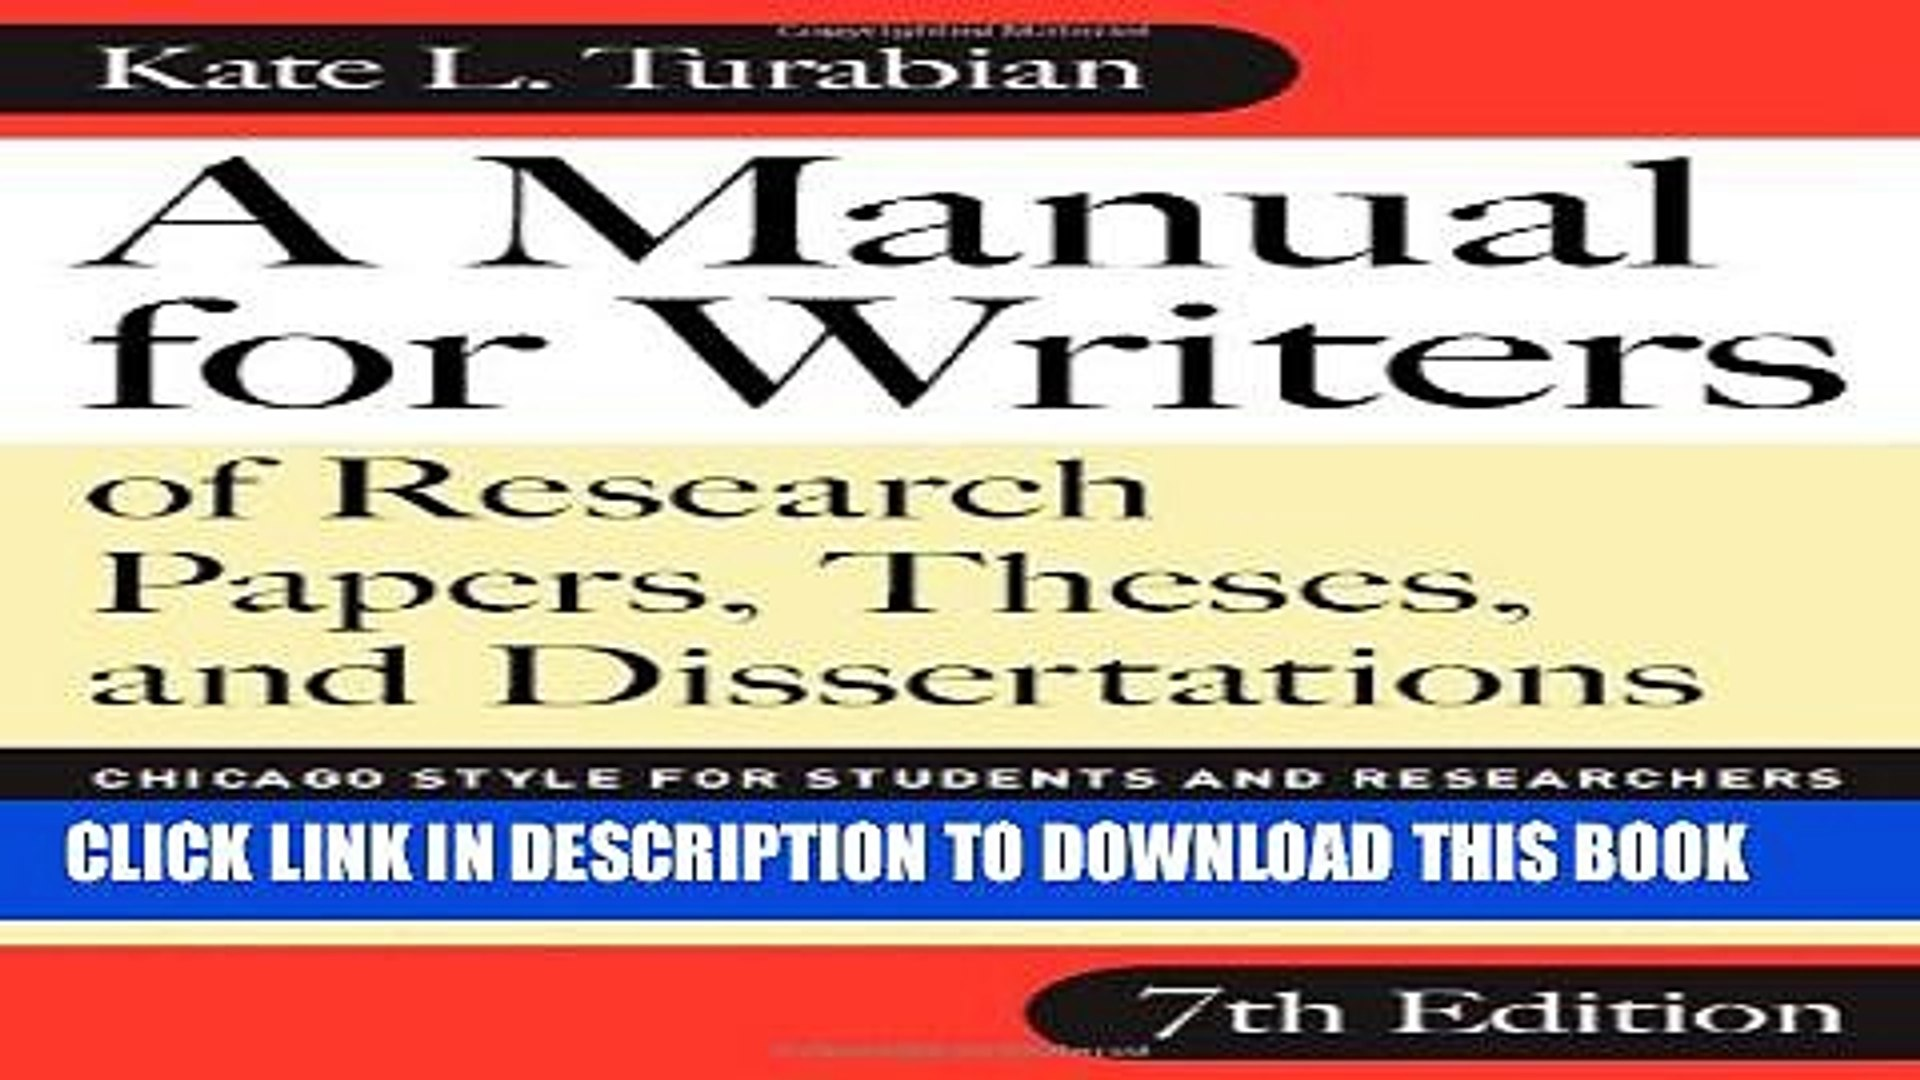 021 Research Paper Manual For Writers Of Papers Theses And Dissertations X1080 Sensational A Ed. 8 8th Edition Ninth Pdf Full